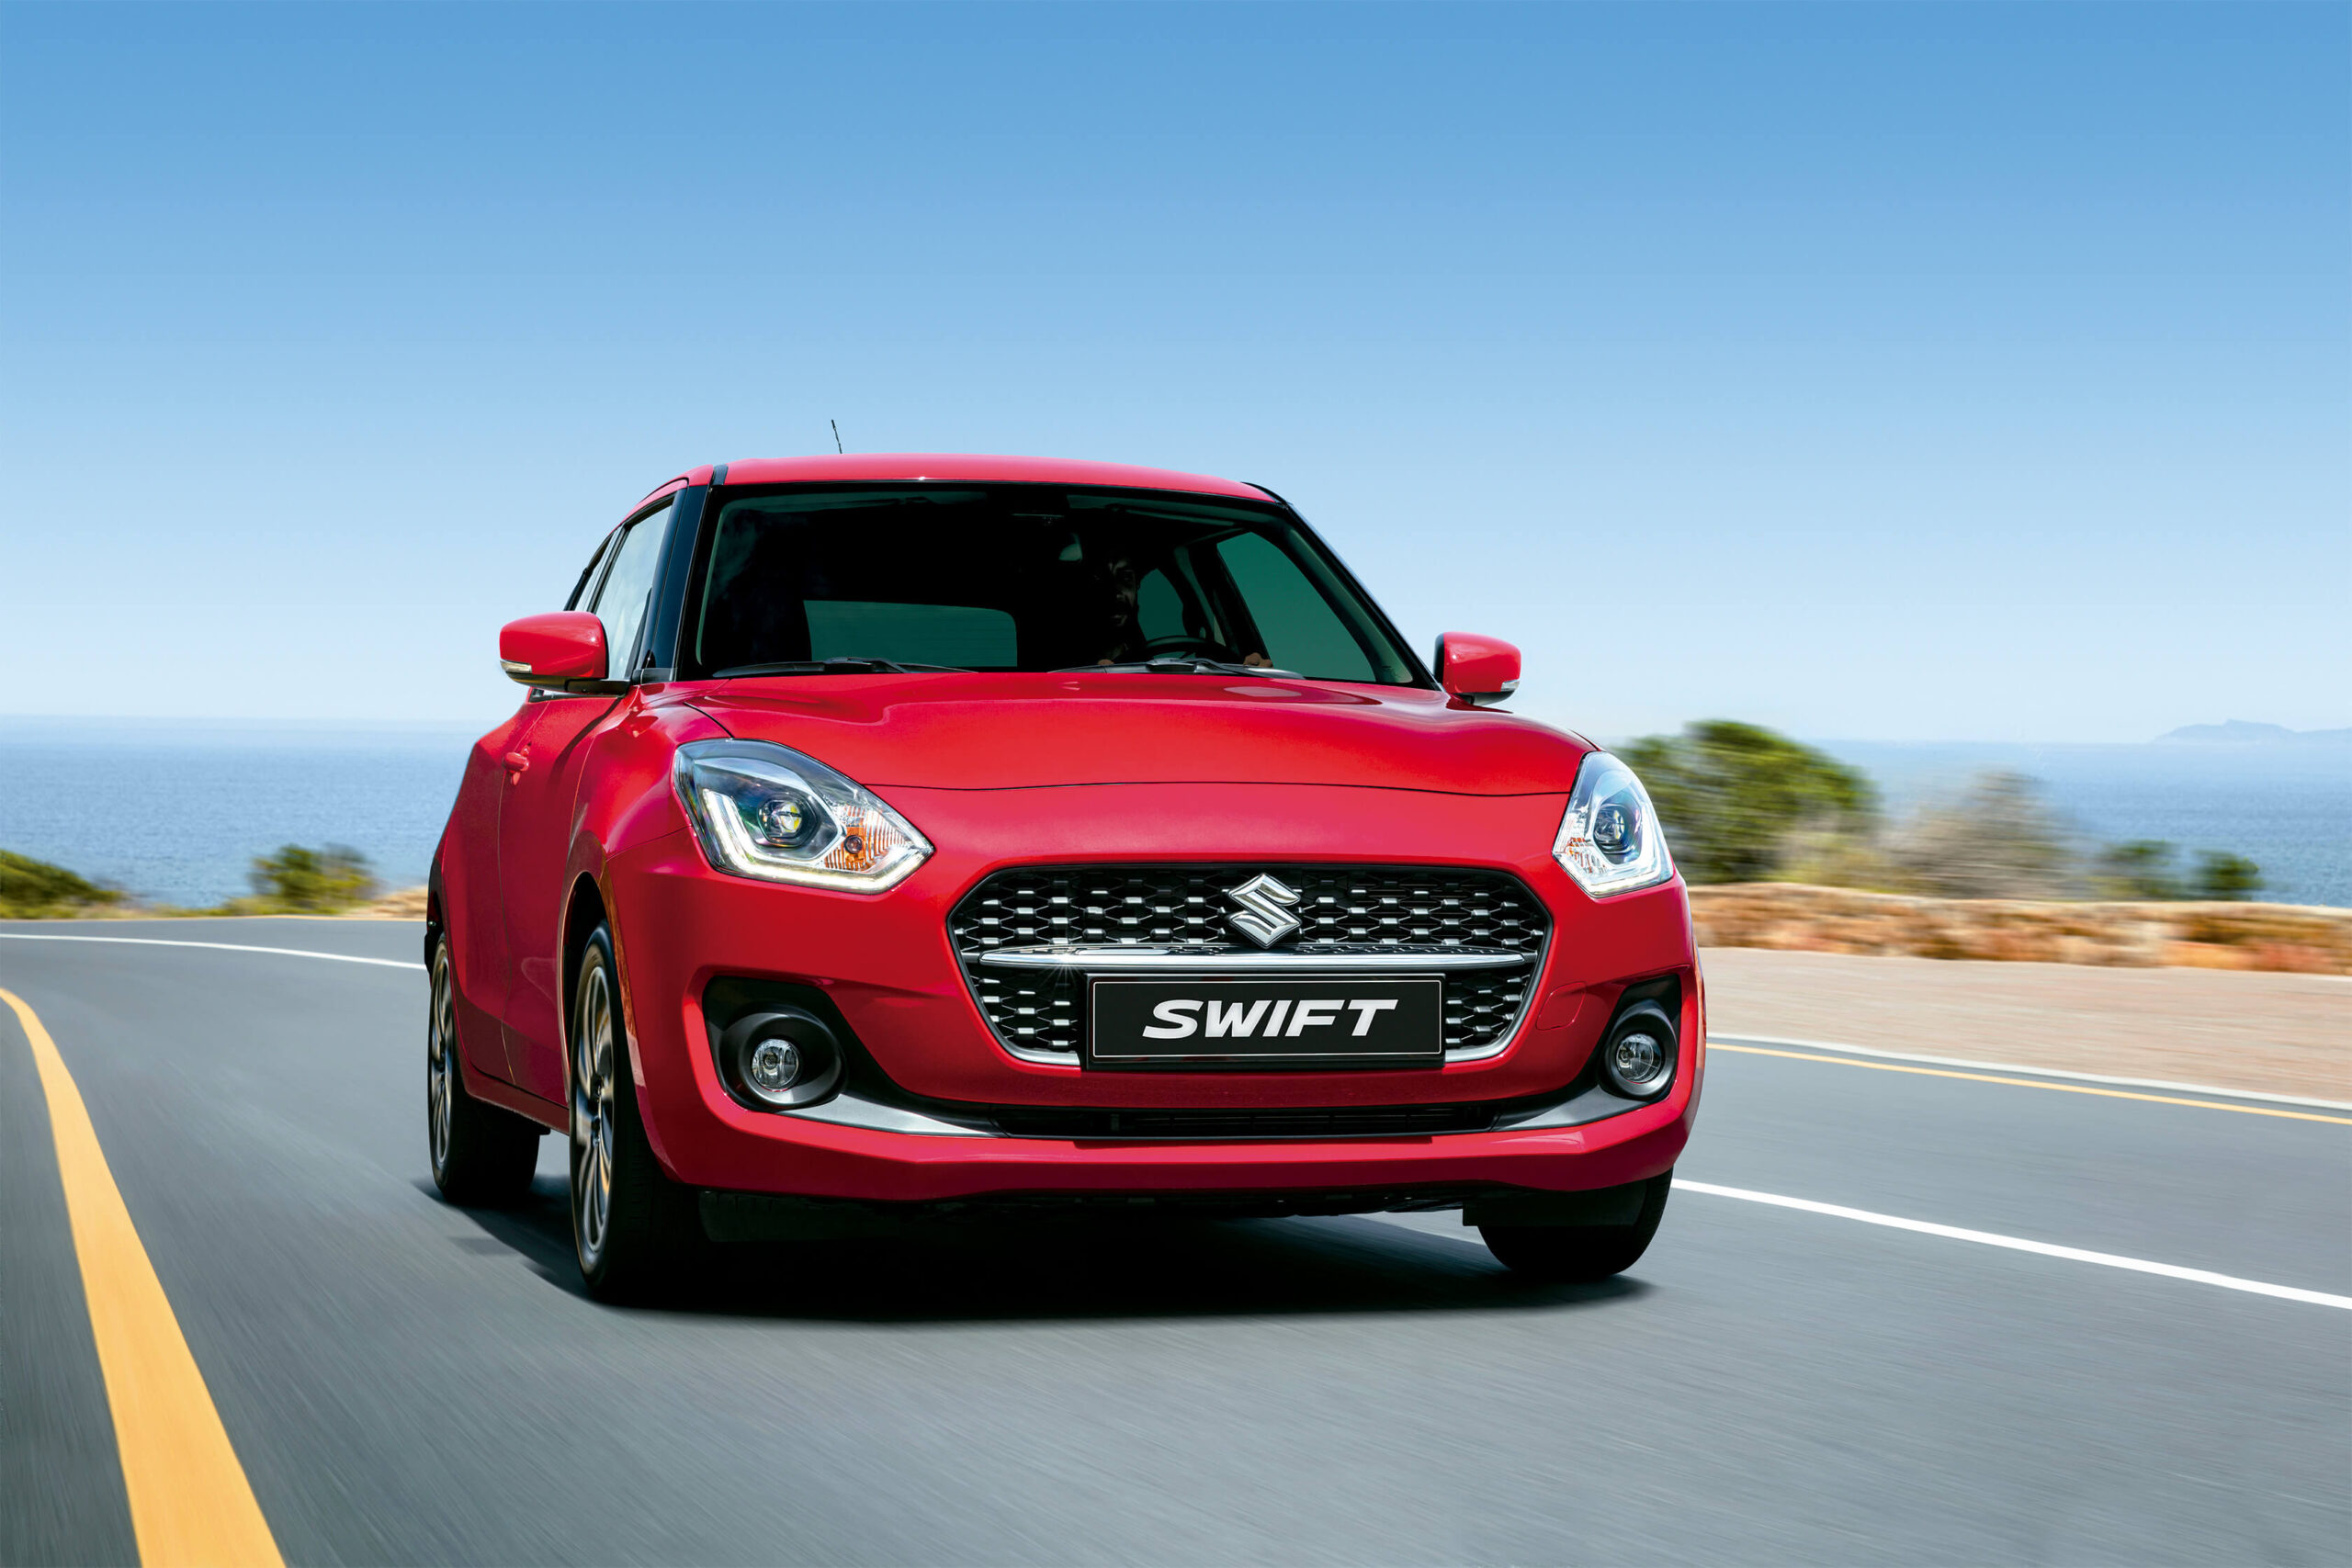 GALLERY-SWIFT-2021-1